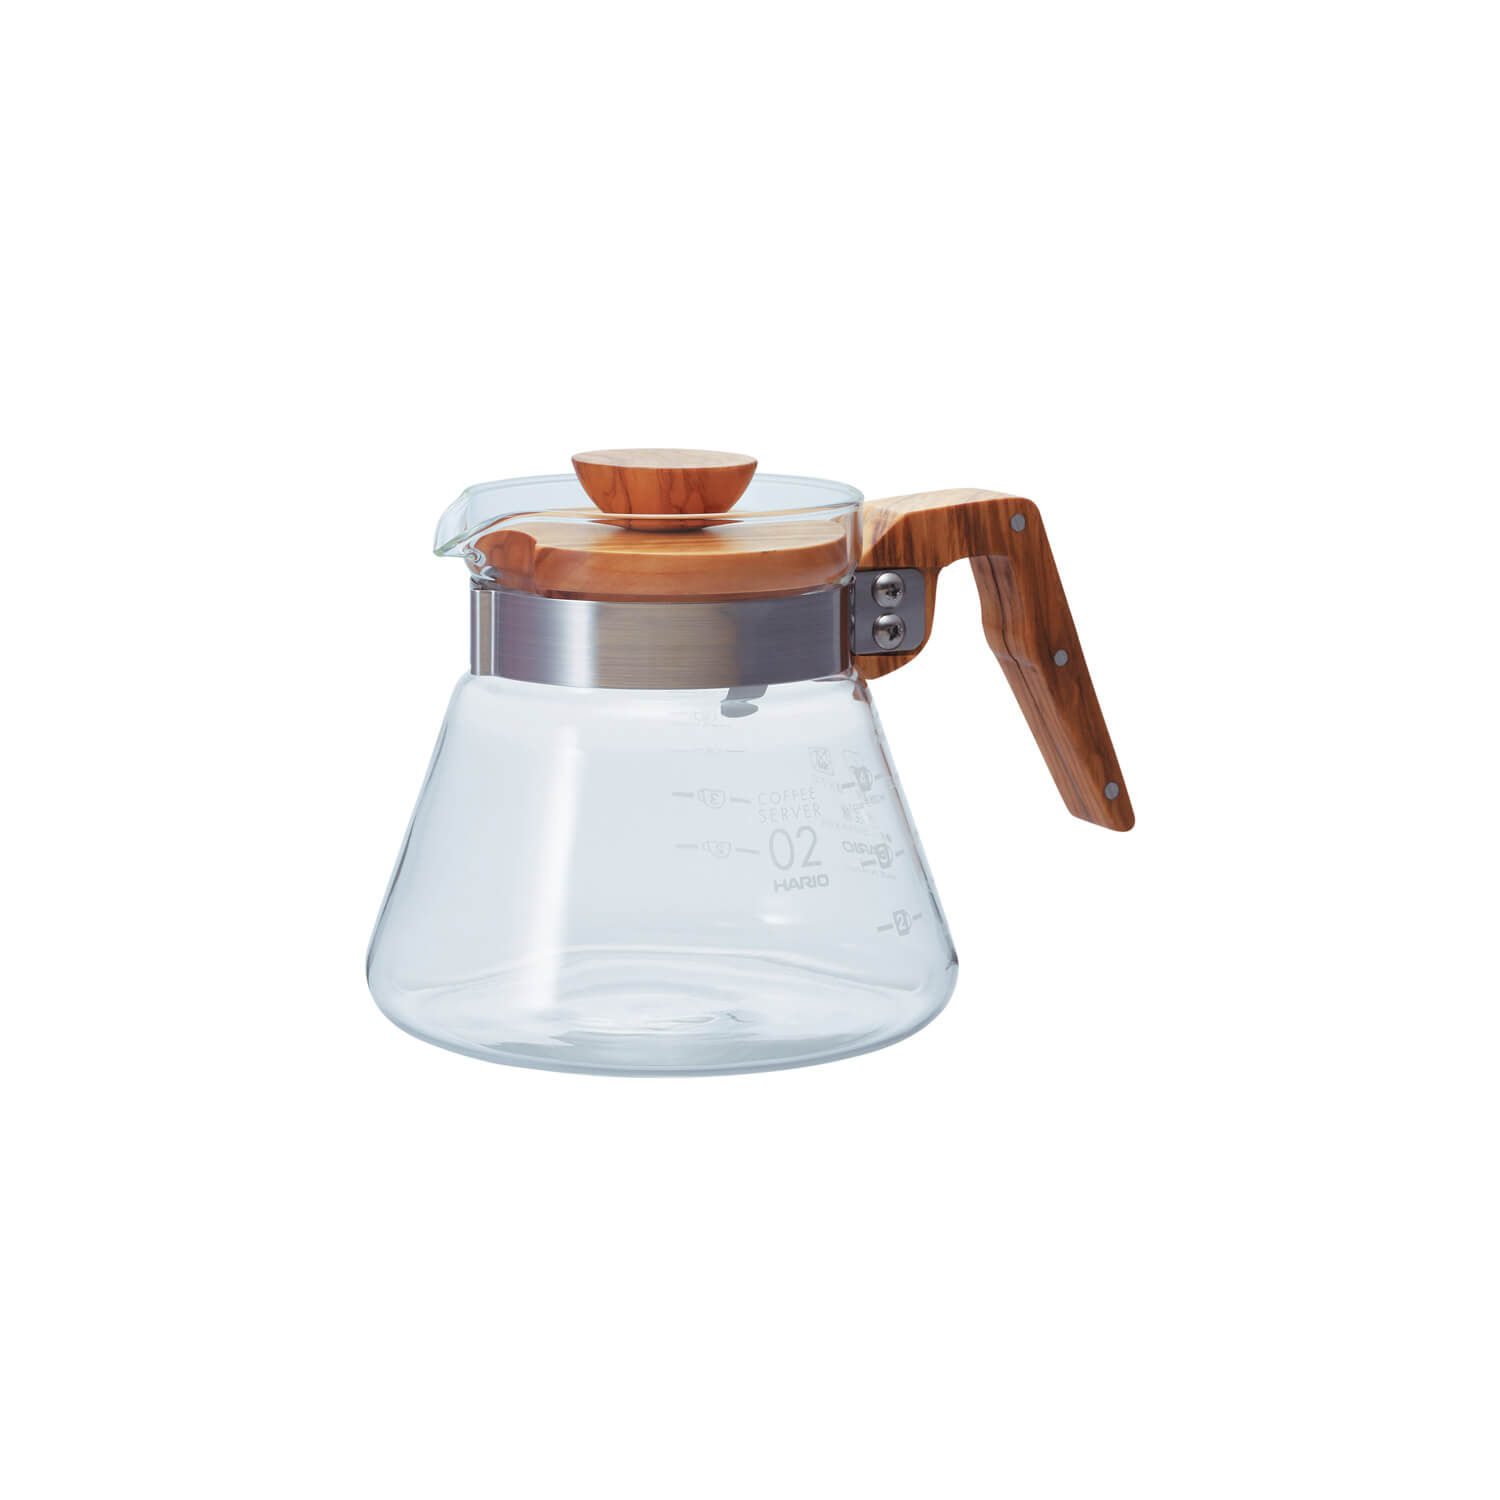 Hario - Coffee Server - Olive Wood - 600ml